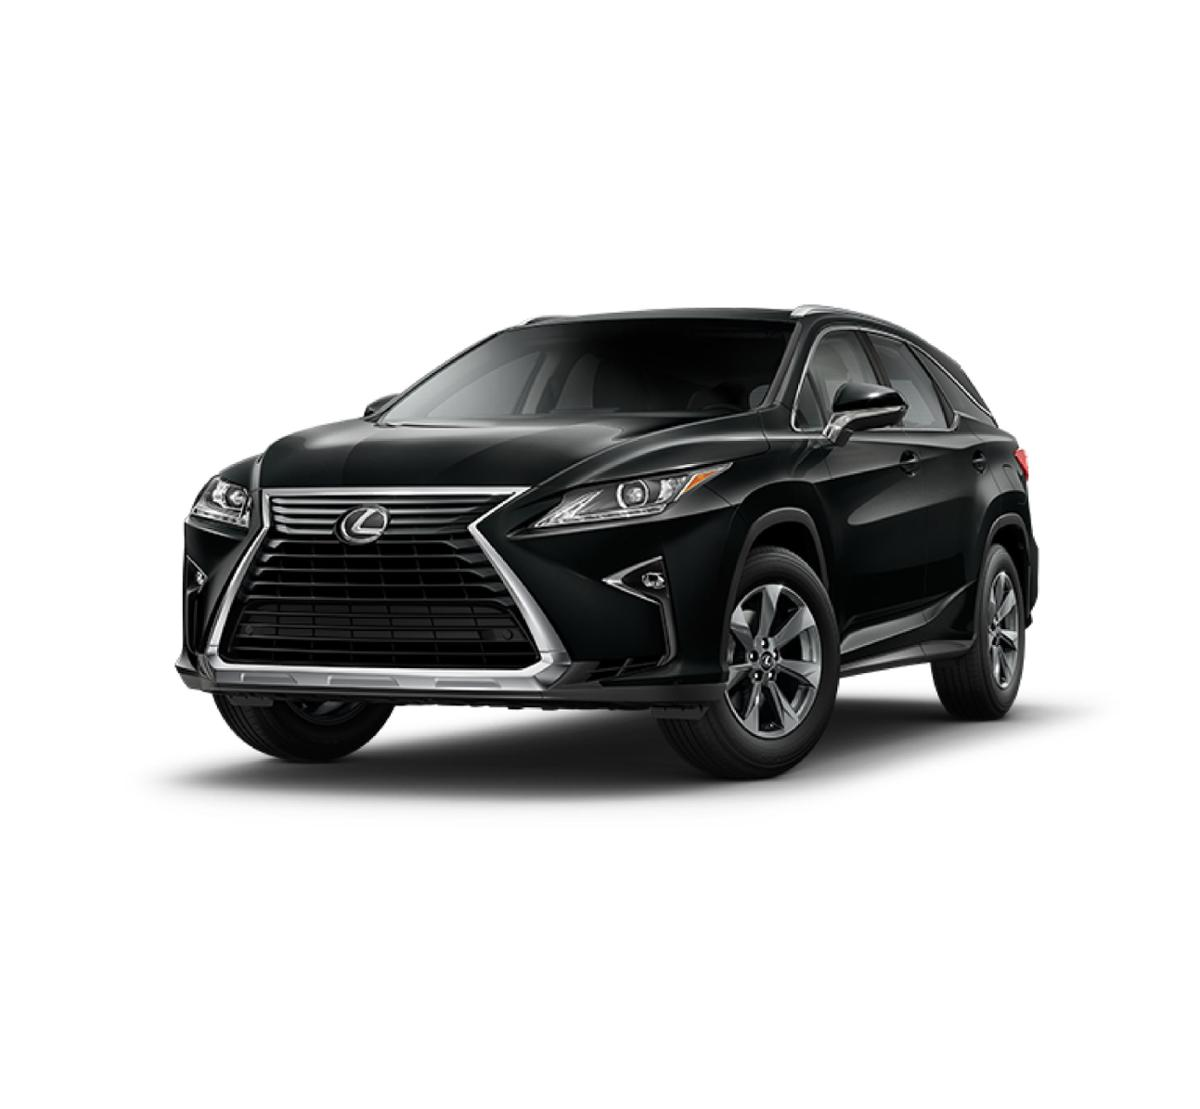 2019 Lexus RX 350L Vehicle Photo in Oakhurst, NJ 07755